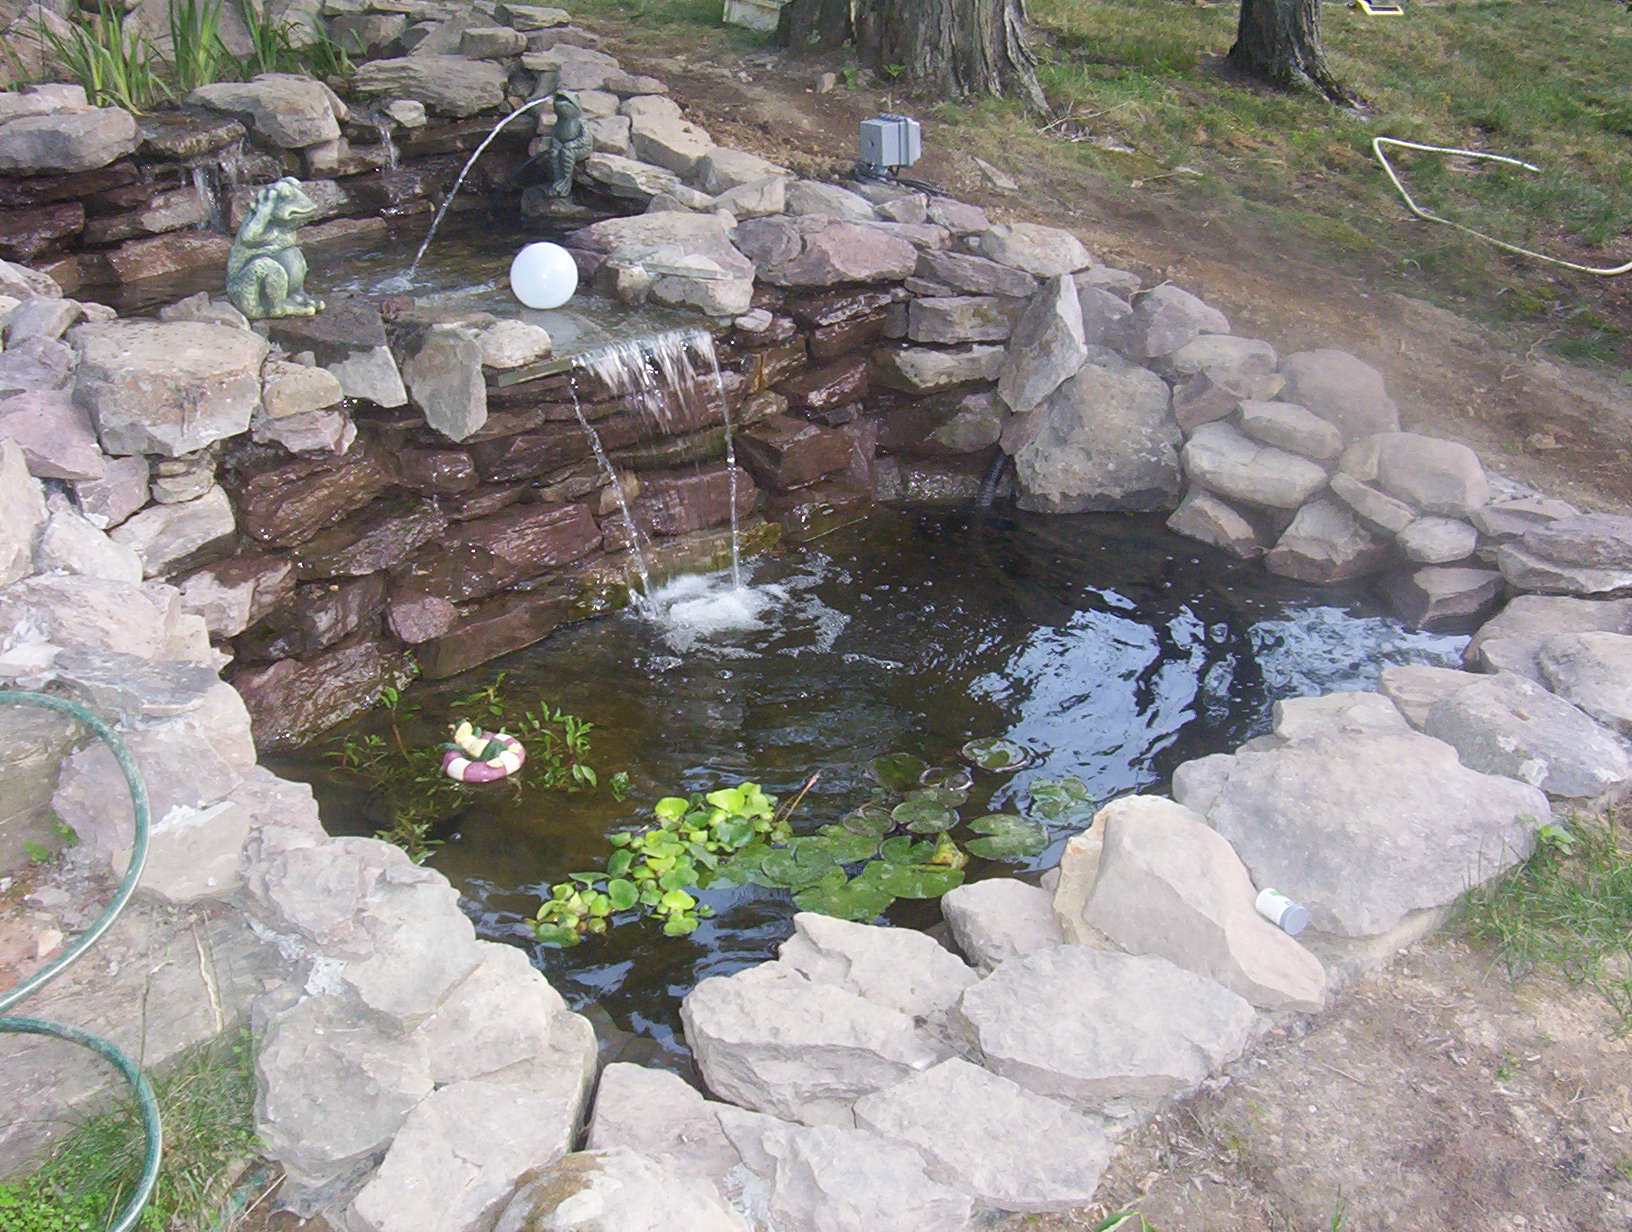 Construction of simmons family fish pond 2006 2007 for Concrete fish pond construction and design